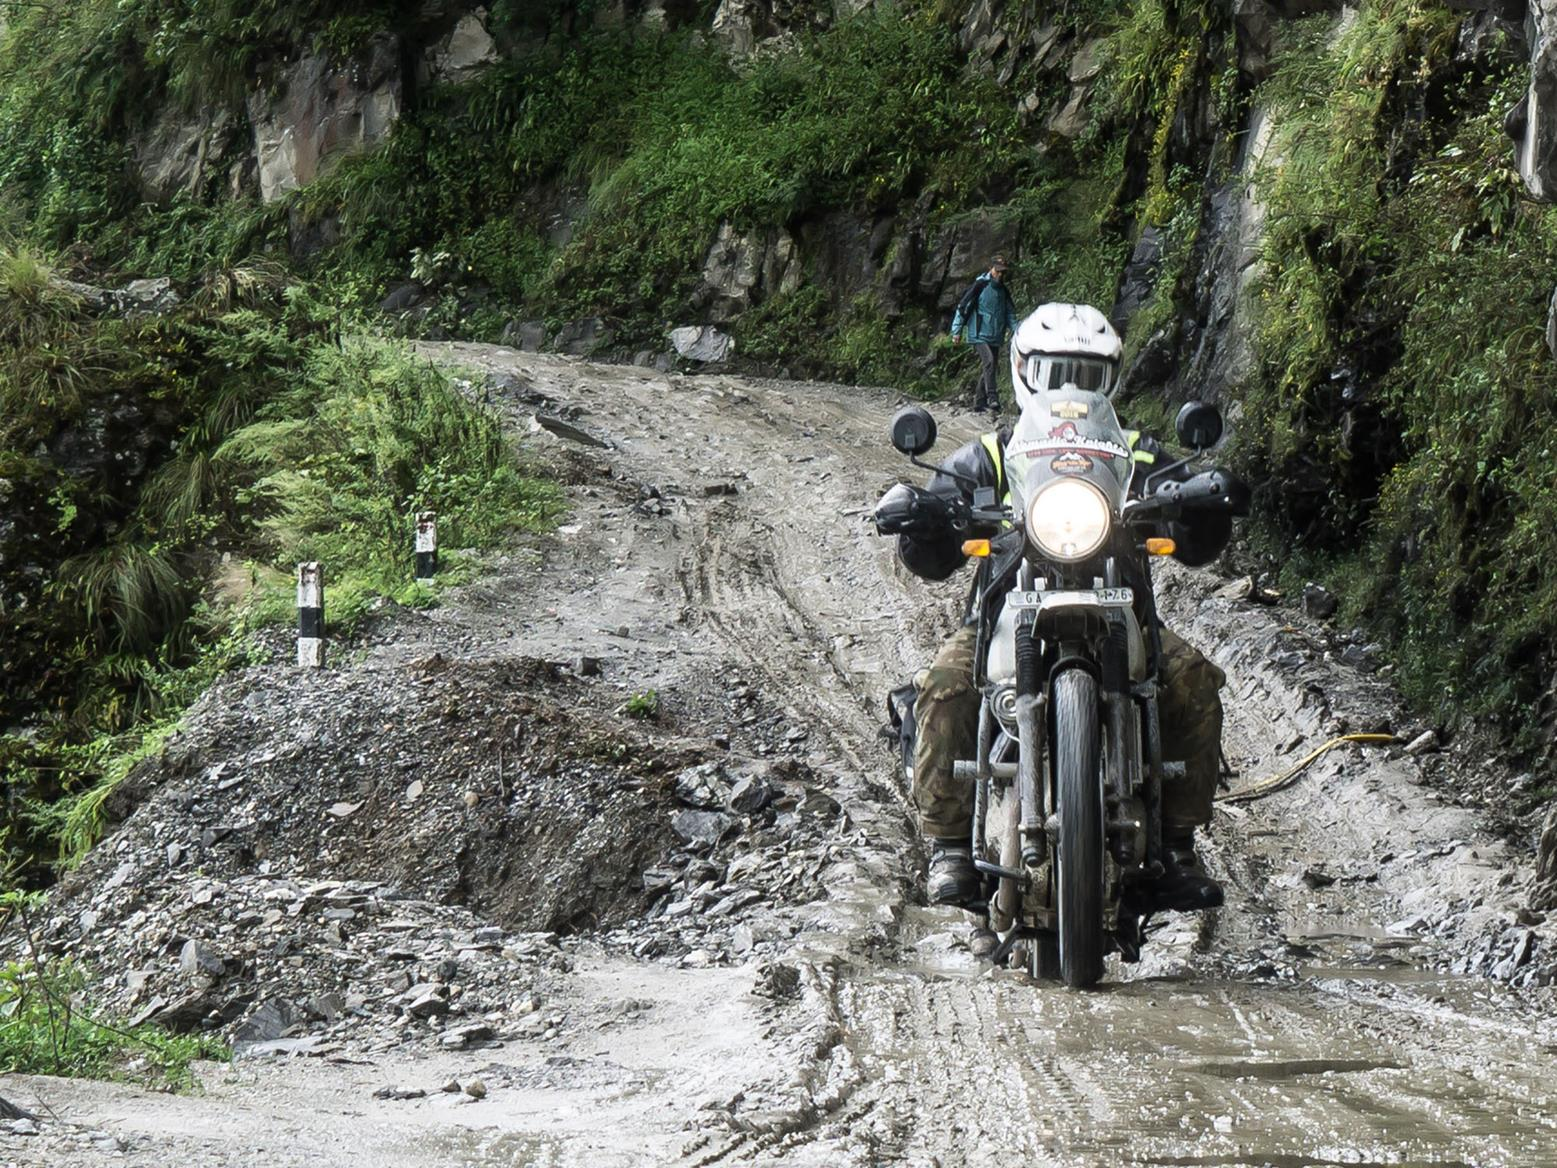 Steph Jeavons leads all-female bike troop to Everest Base Camp